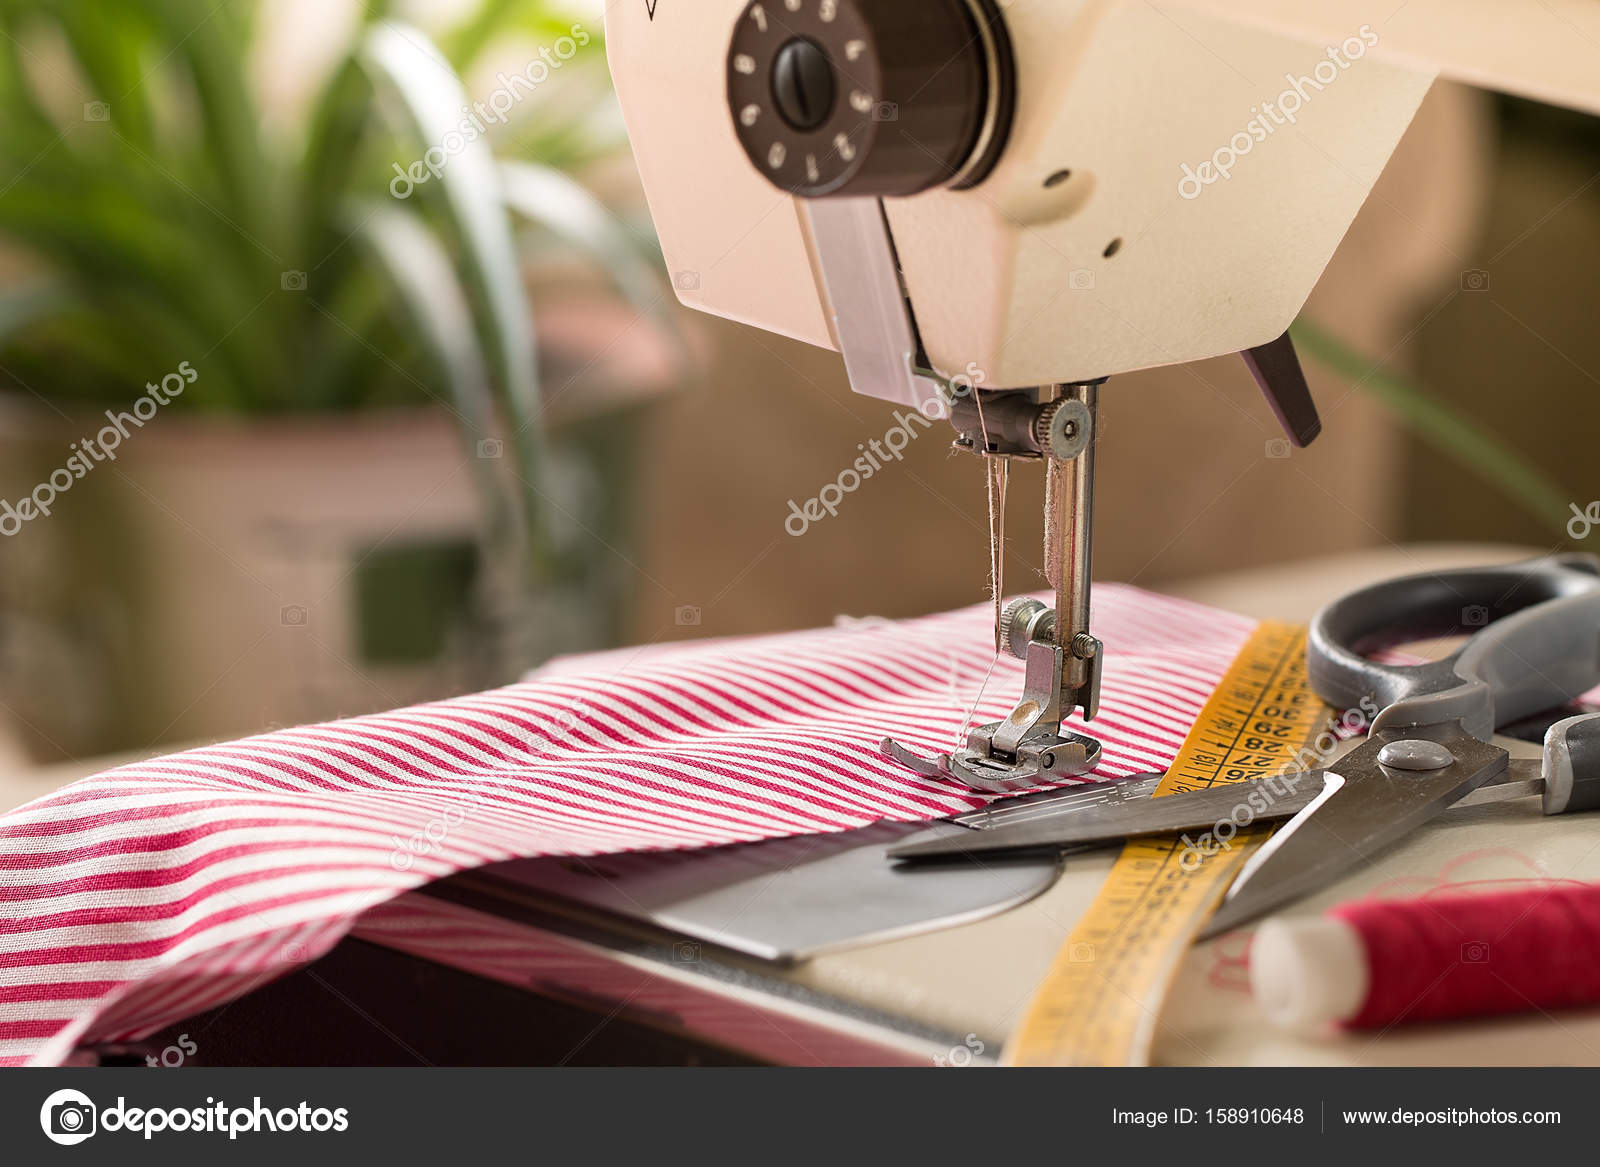 sewing machine hobby sewing fabric as a small business concept